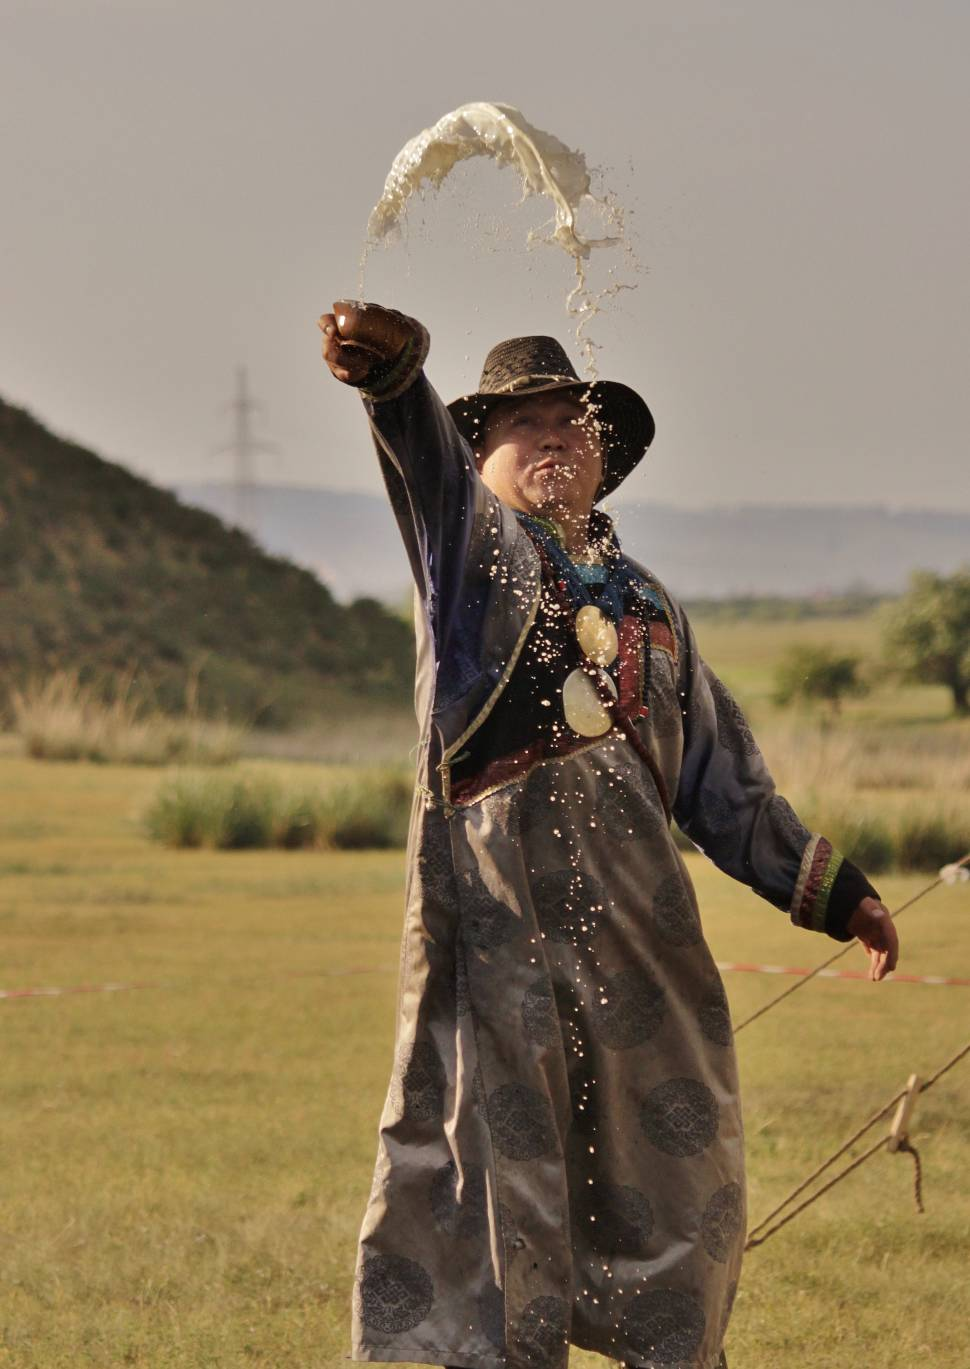 Shaman makes offerings to the local spirits